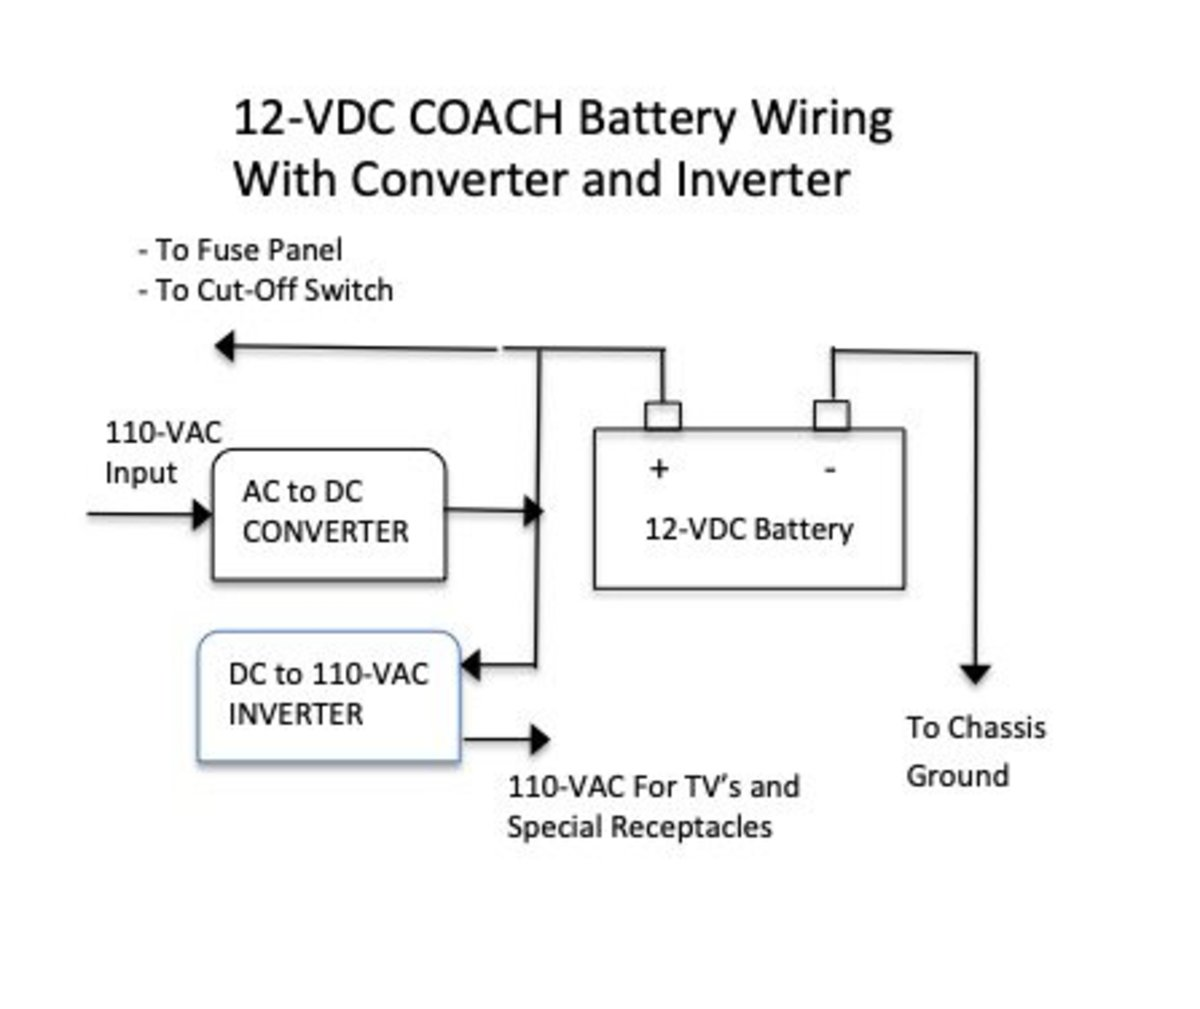 RV Inverters and Converters: How They Operate to Keep Your Camper Equipment Functioning